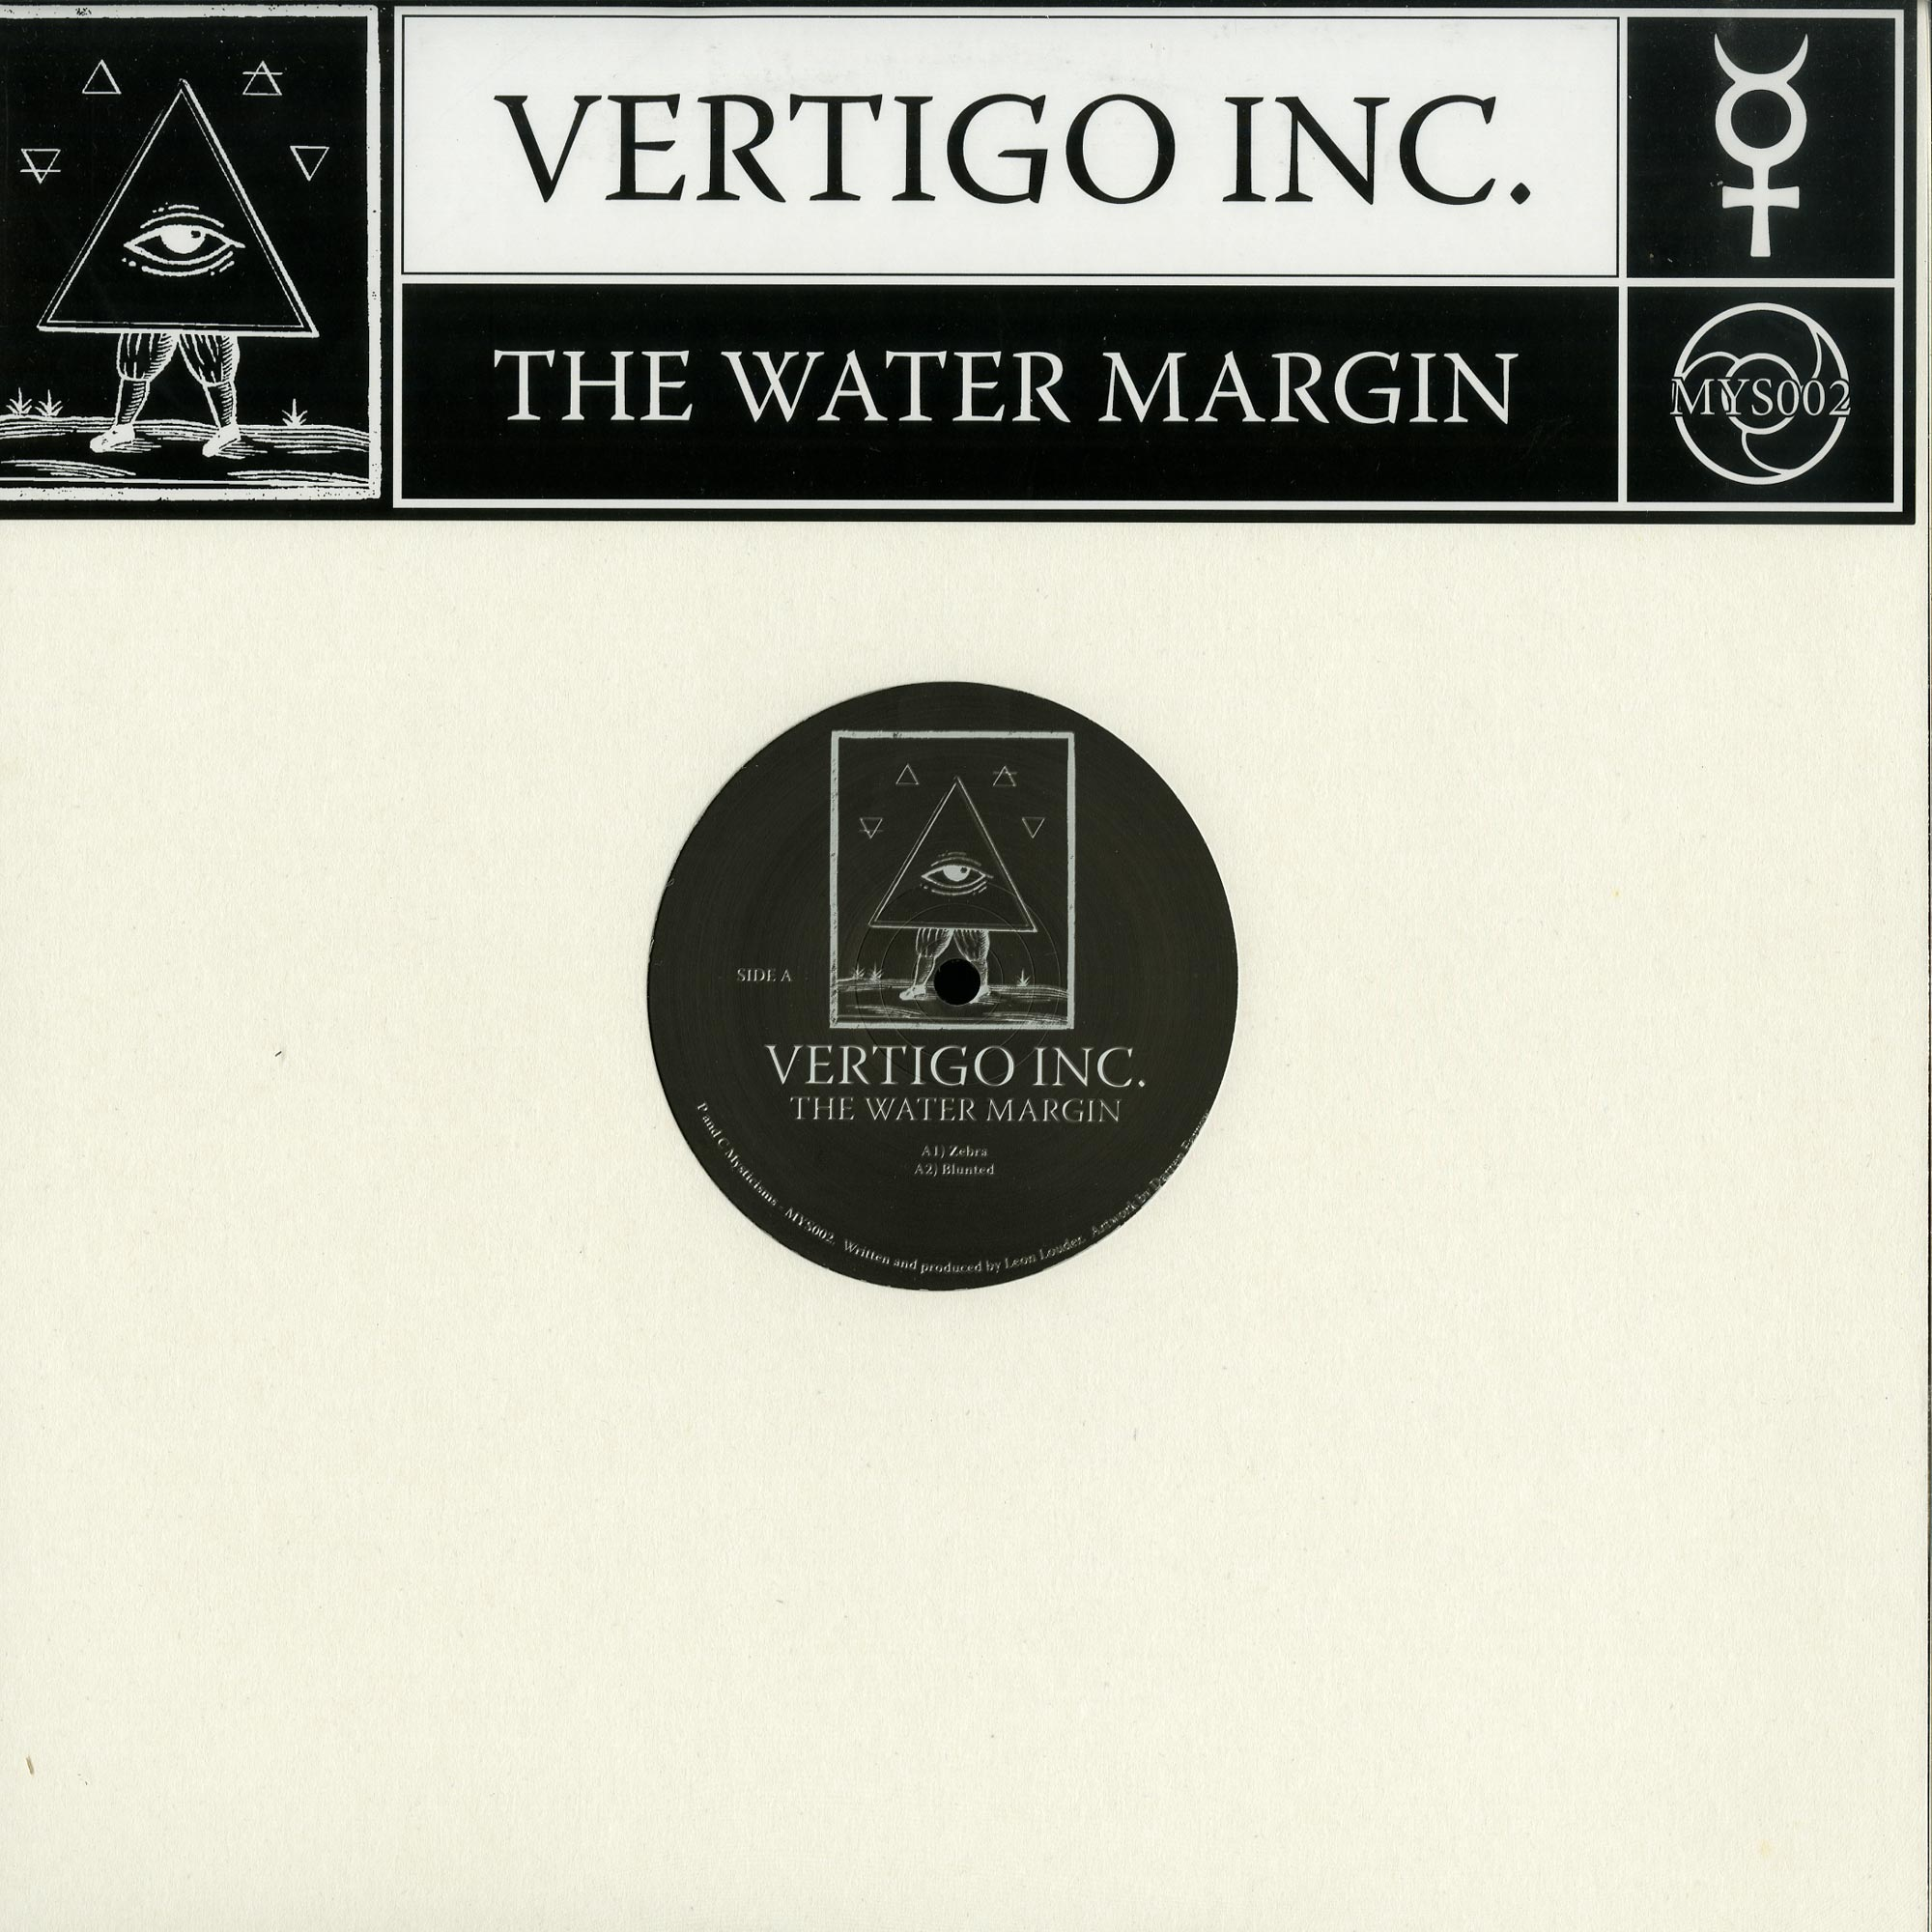 Vertigo Inc. - THE WATER MARGIN